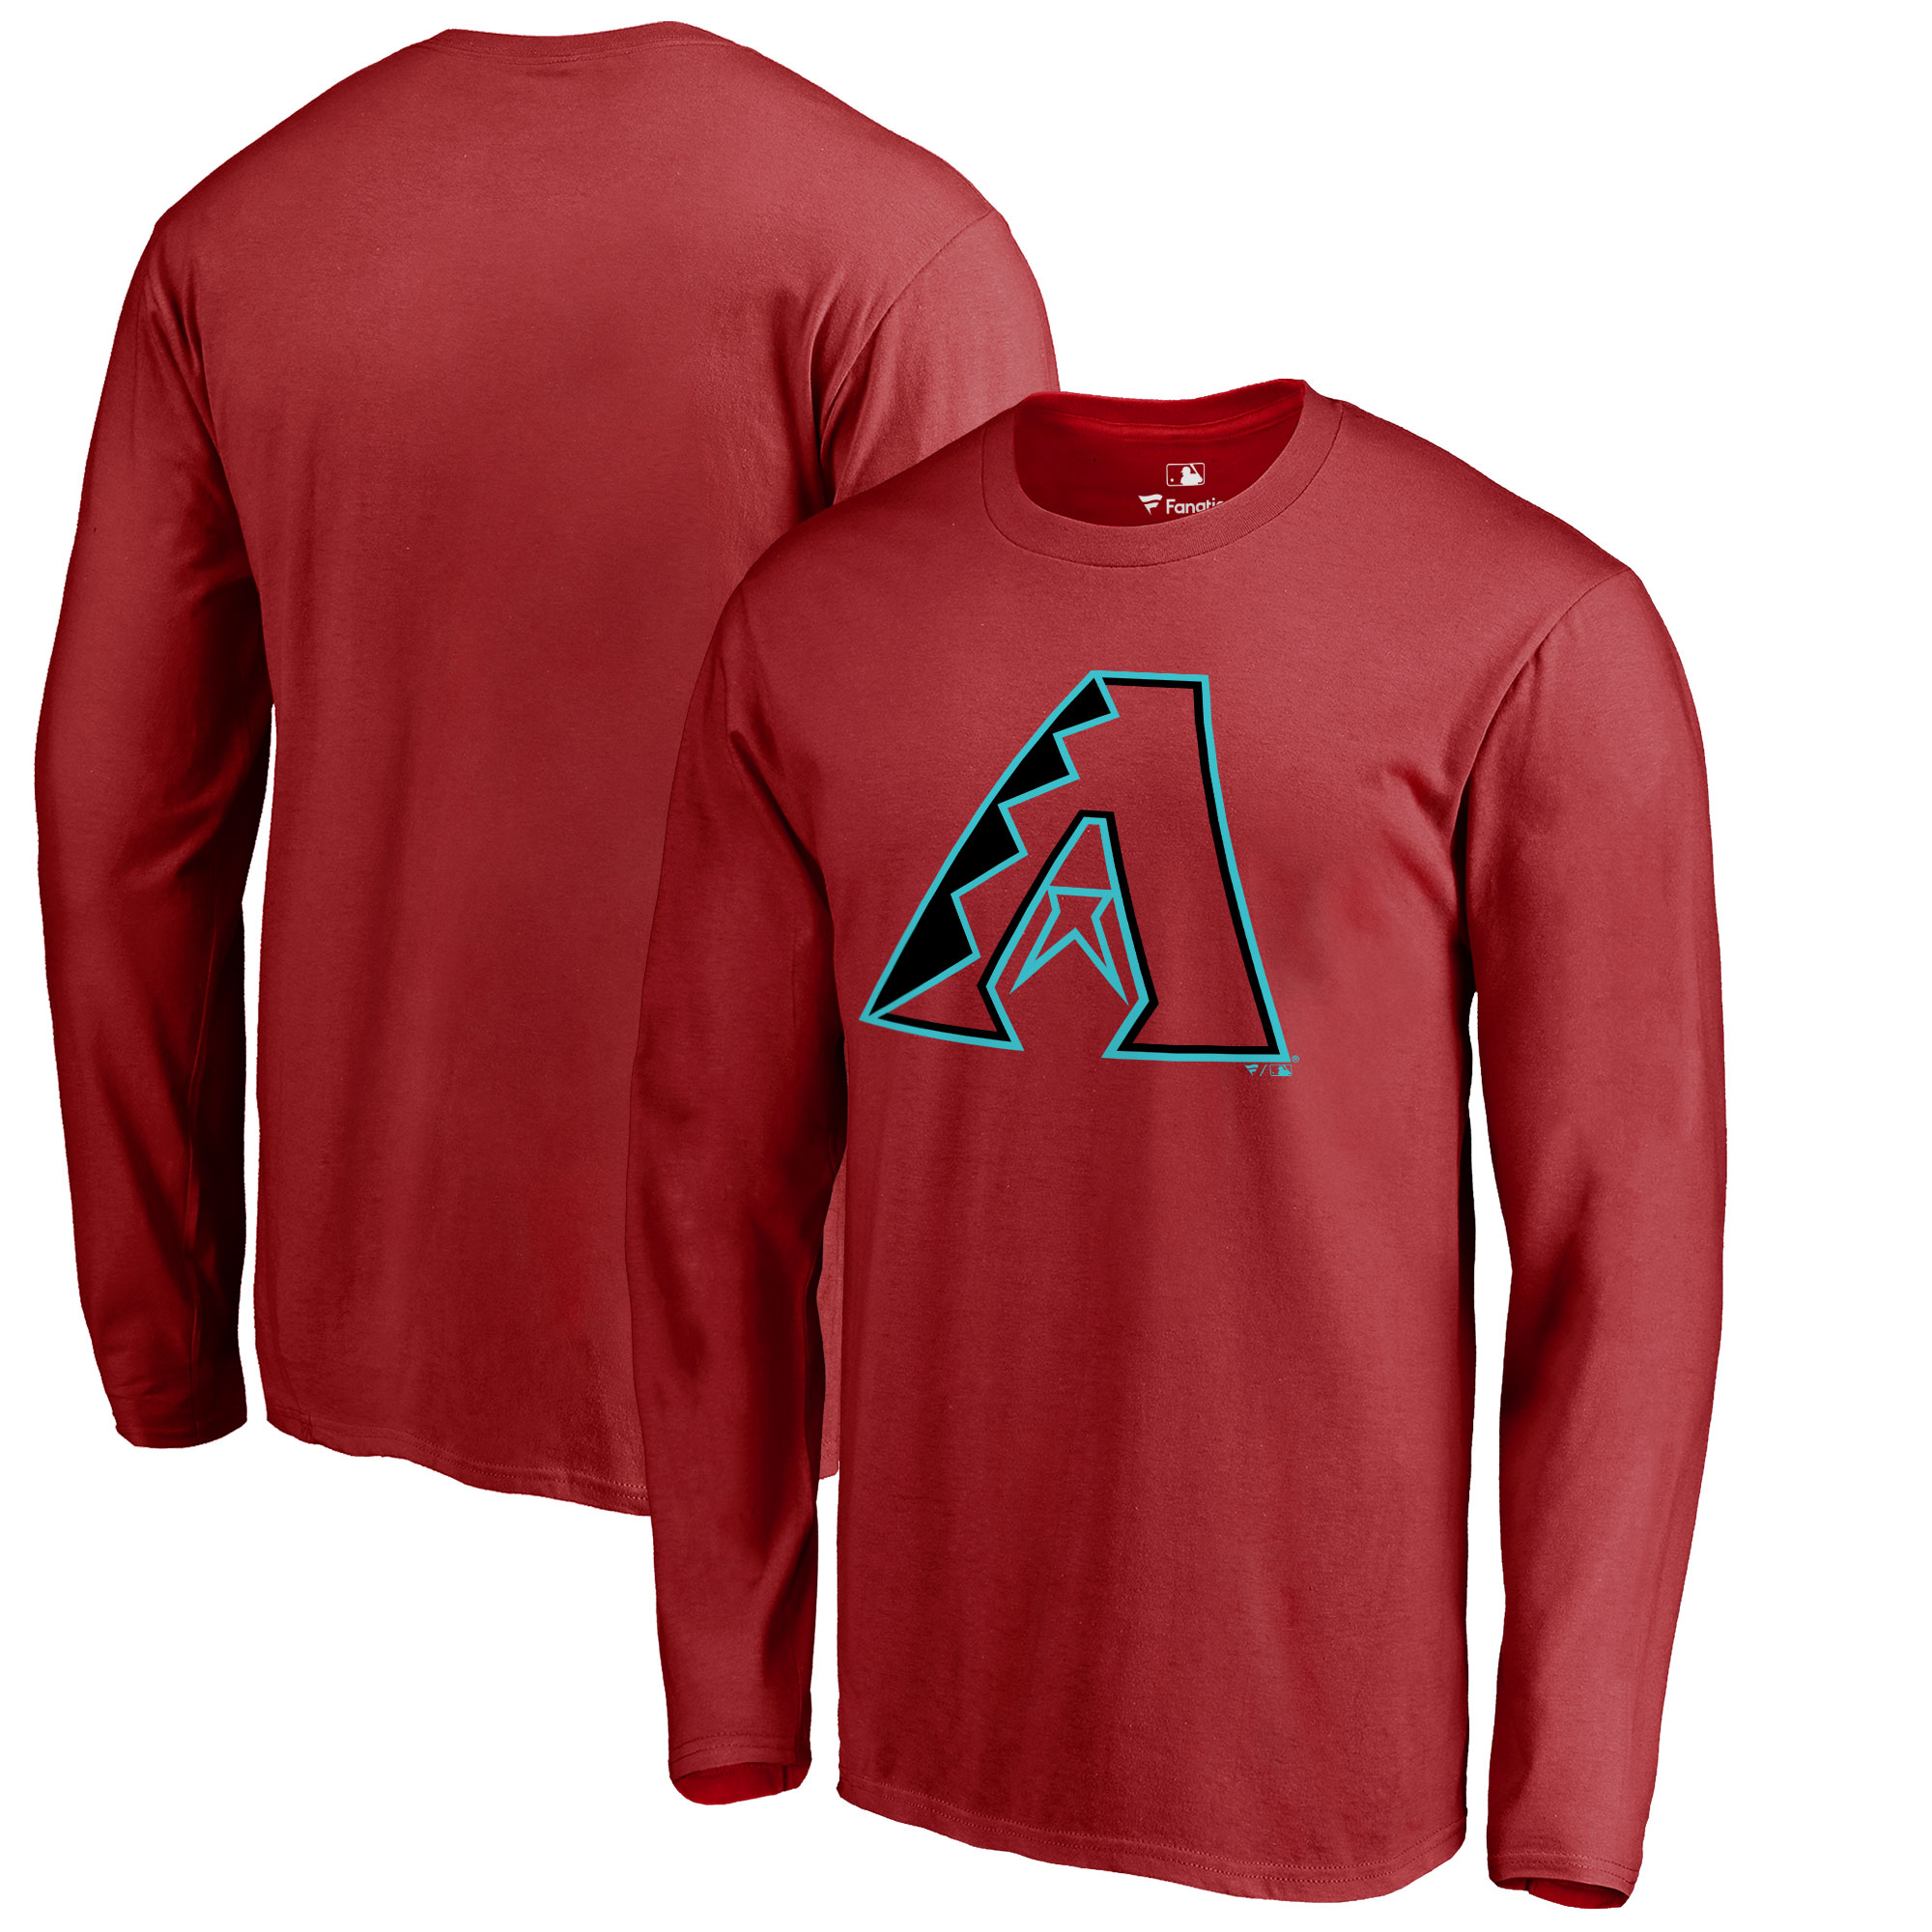 Arizona Diamondbacks Big & Tall Primary Team Logo Long Sleeve T-Shirt - Red